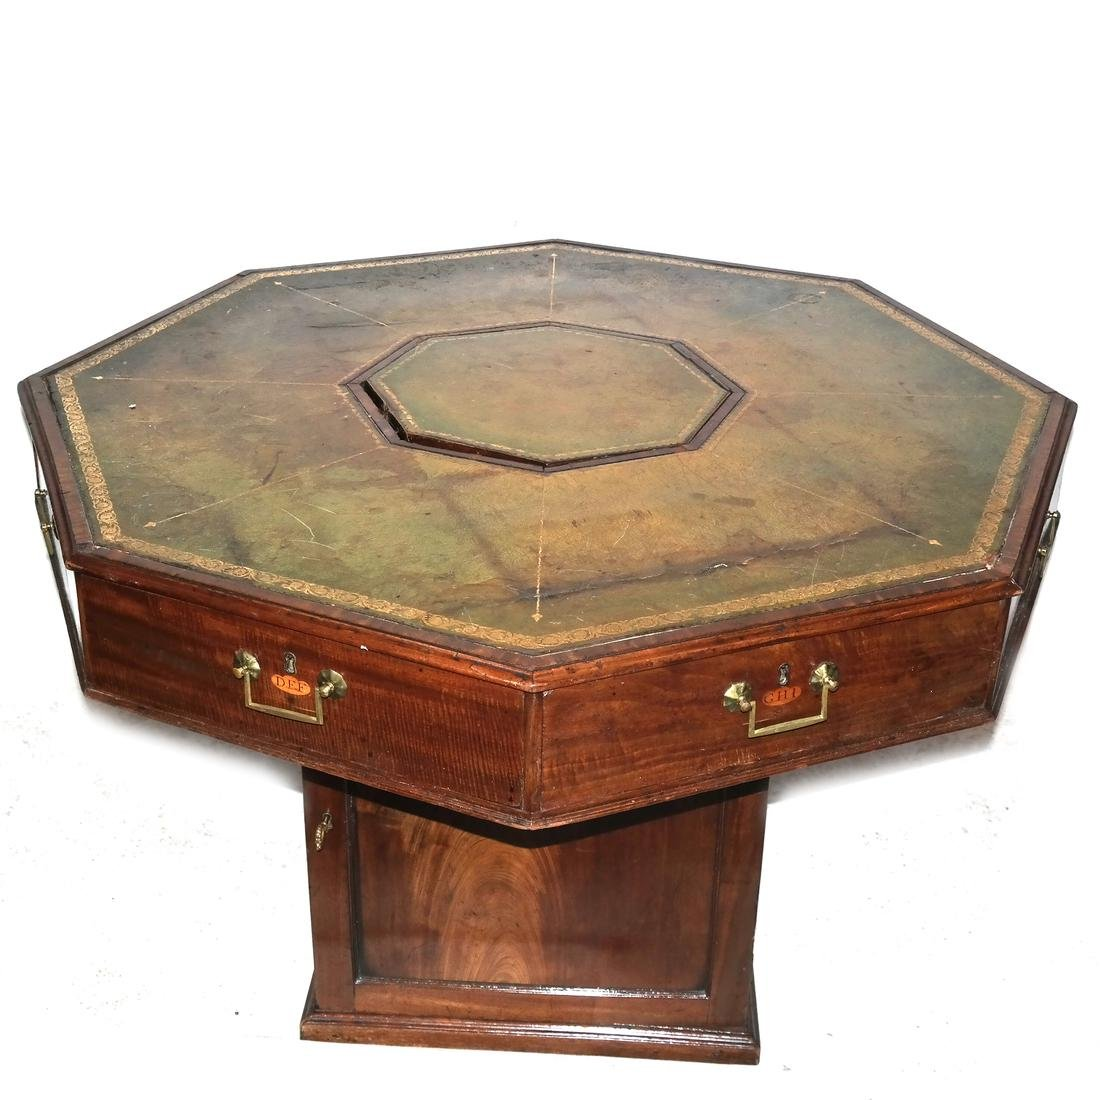 Antique English Octagonal Leather Top Table